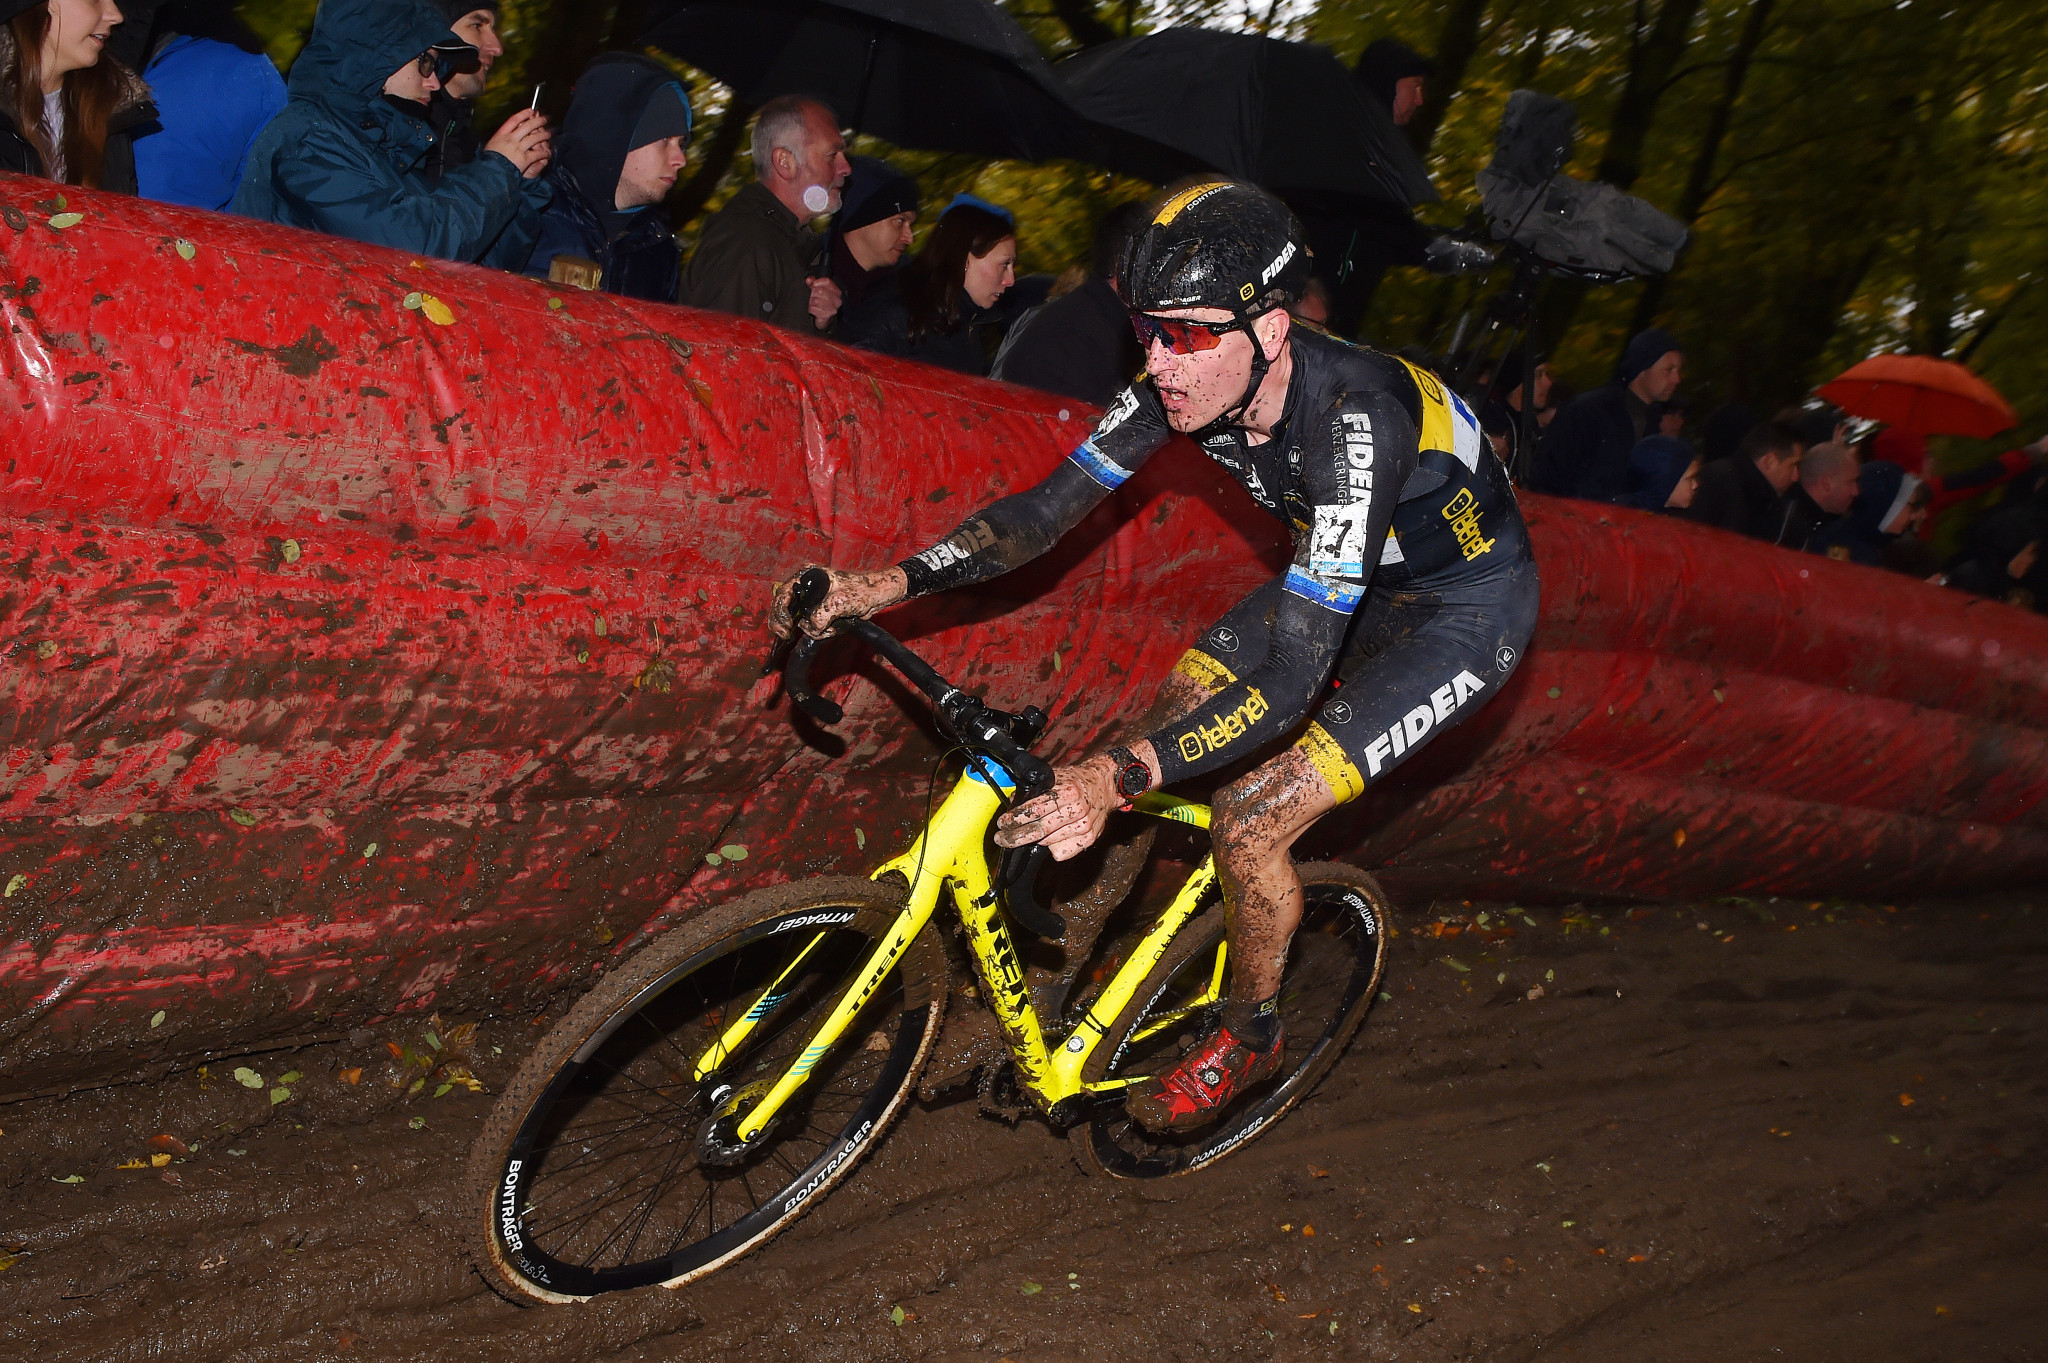 Van der Poel looking to continue imperious form as UCI Cyclo-Cross World Cup heads to Namur